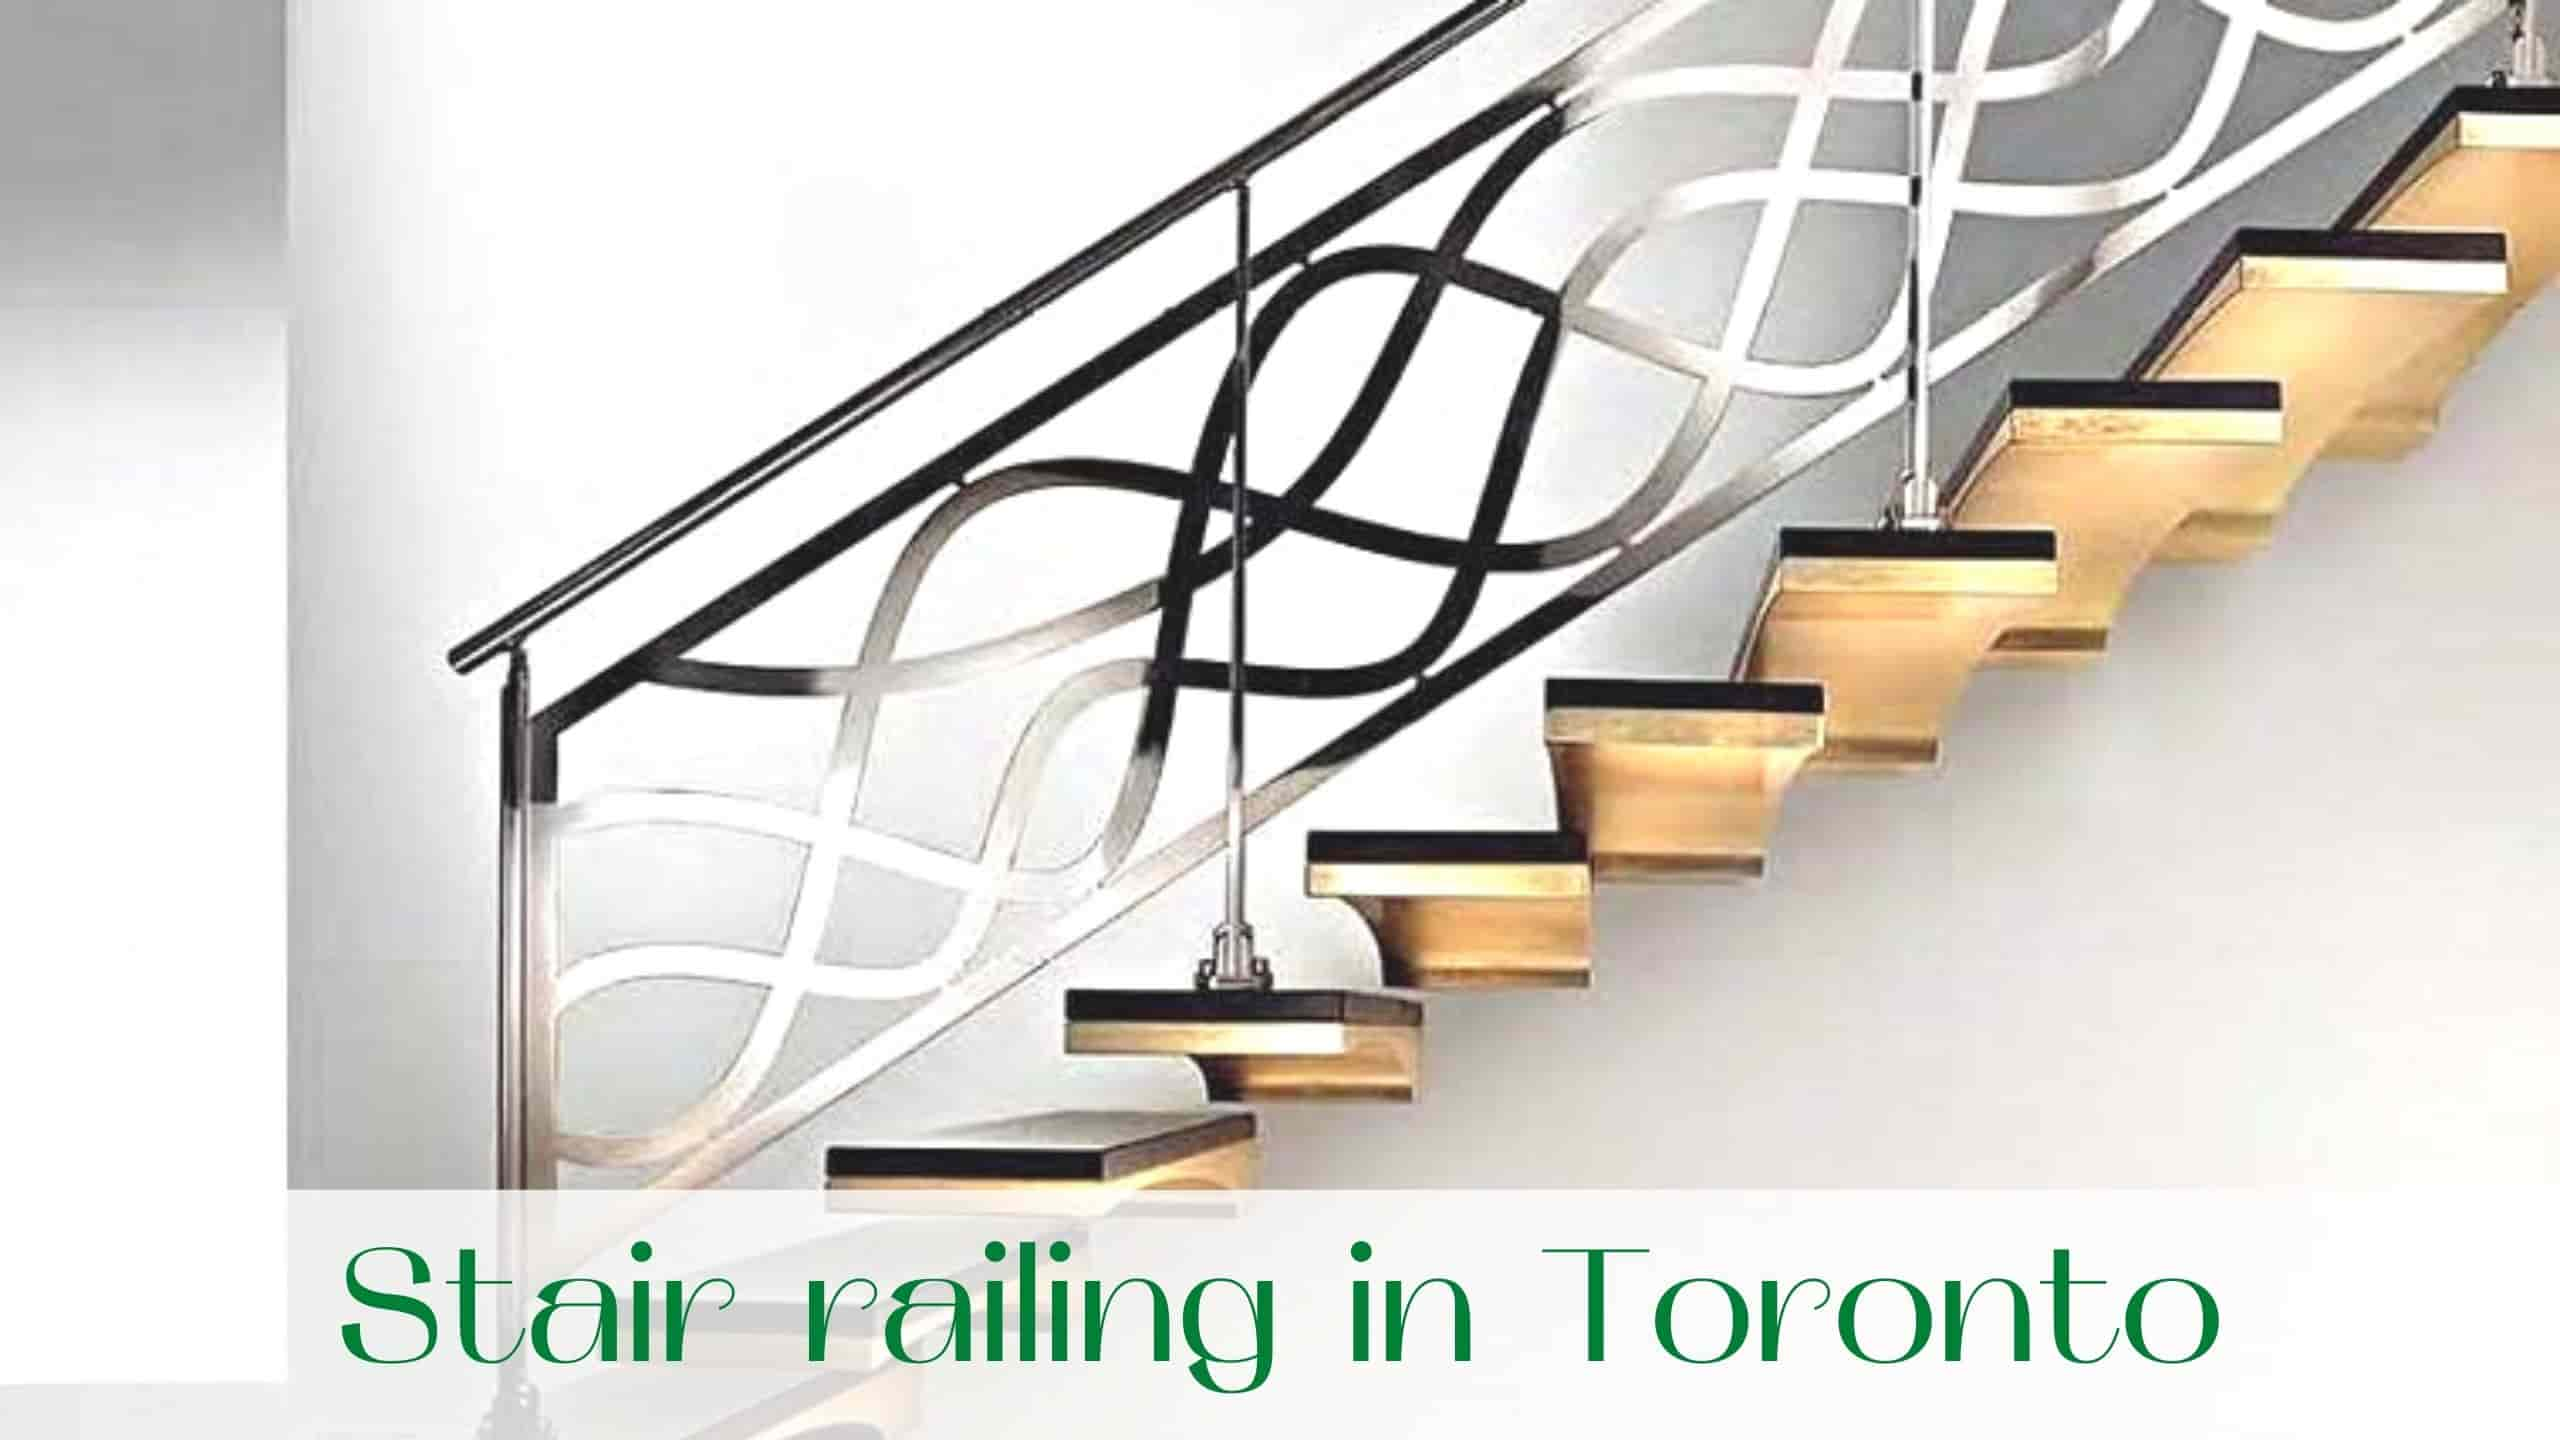 image-stair-railing-in-toronto